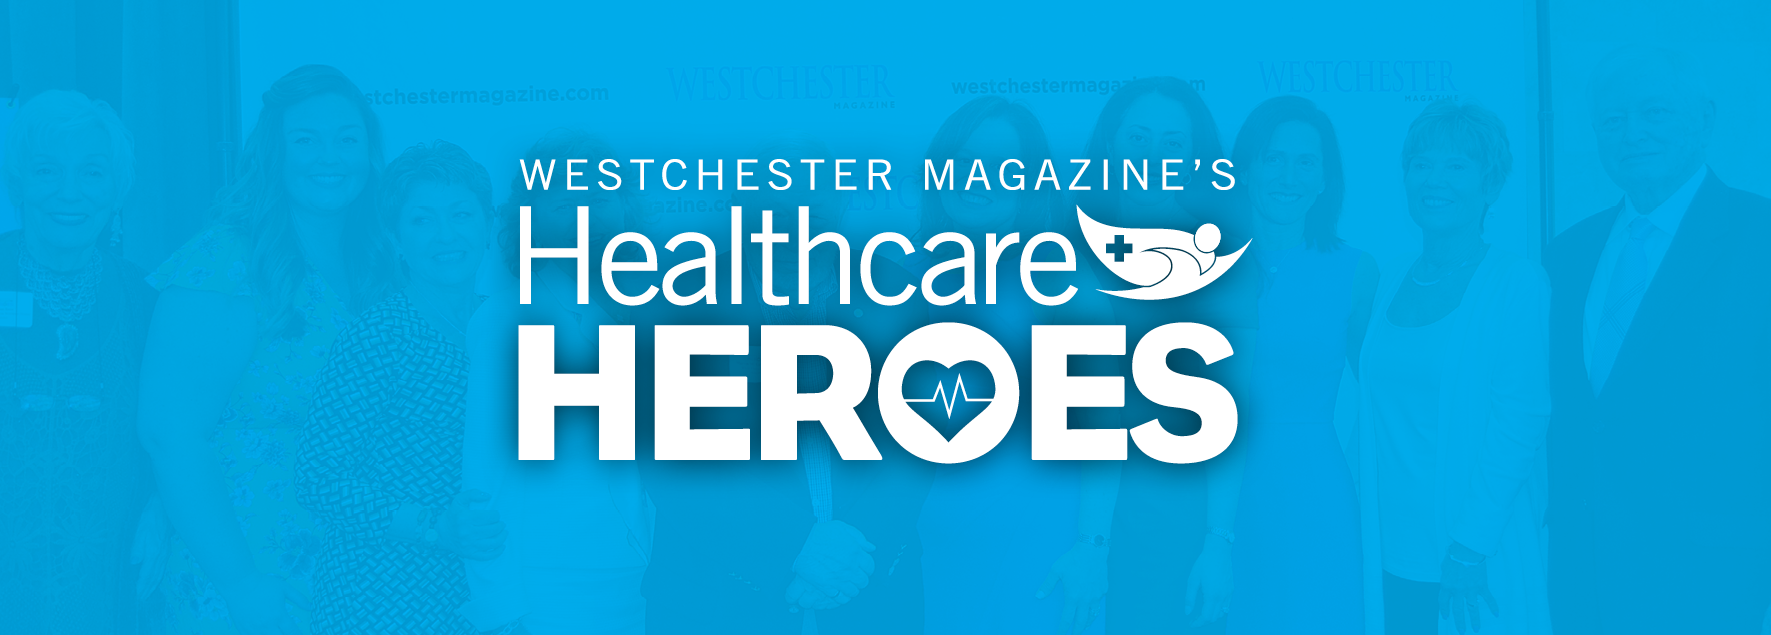 Tickets for Healthcare Heroes 2018 in Eastchester from ShowClix